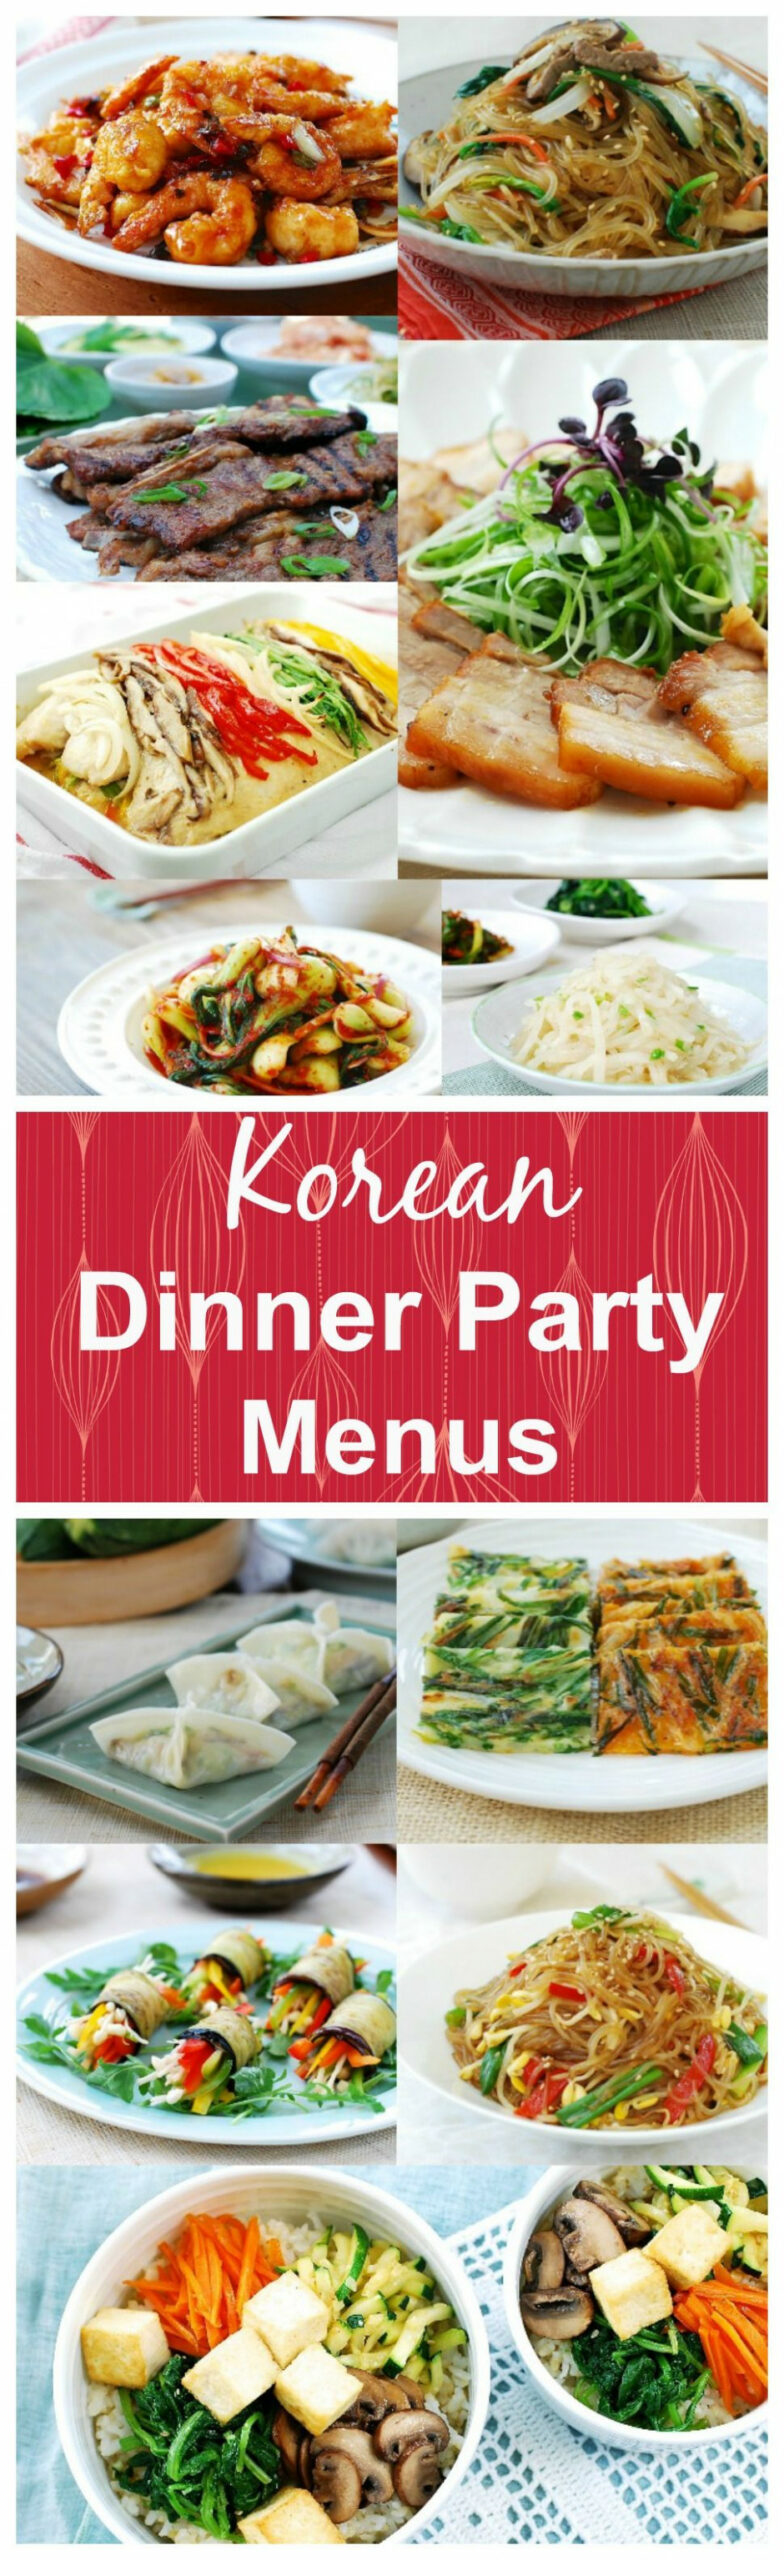 Menus for Korean Dinner Parties | Asian cooking, Dinner ..